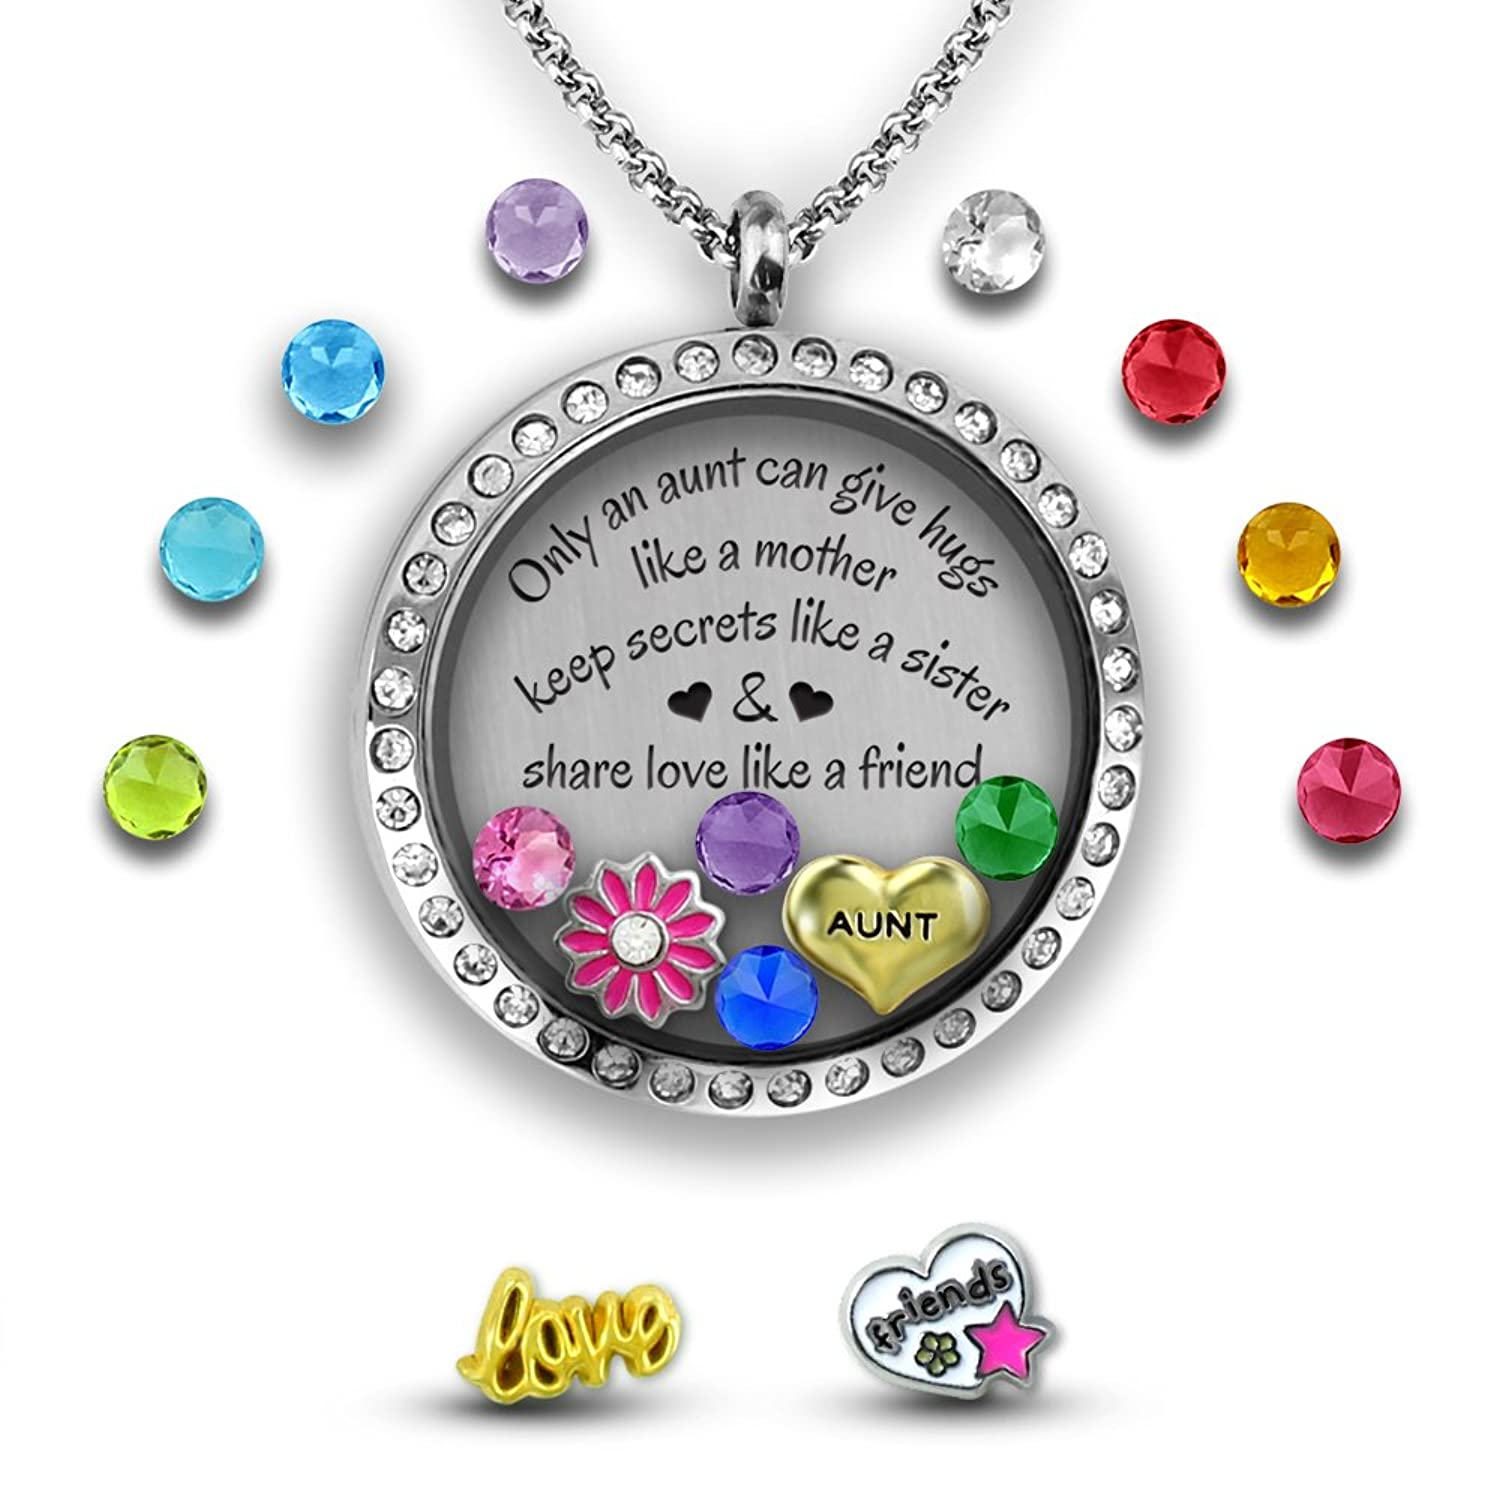 silver aunt uk co necklace with heart auntie charm on amazon chain special length jewellery is adjustable gift dp boxed diamante